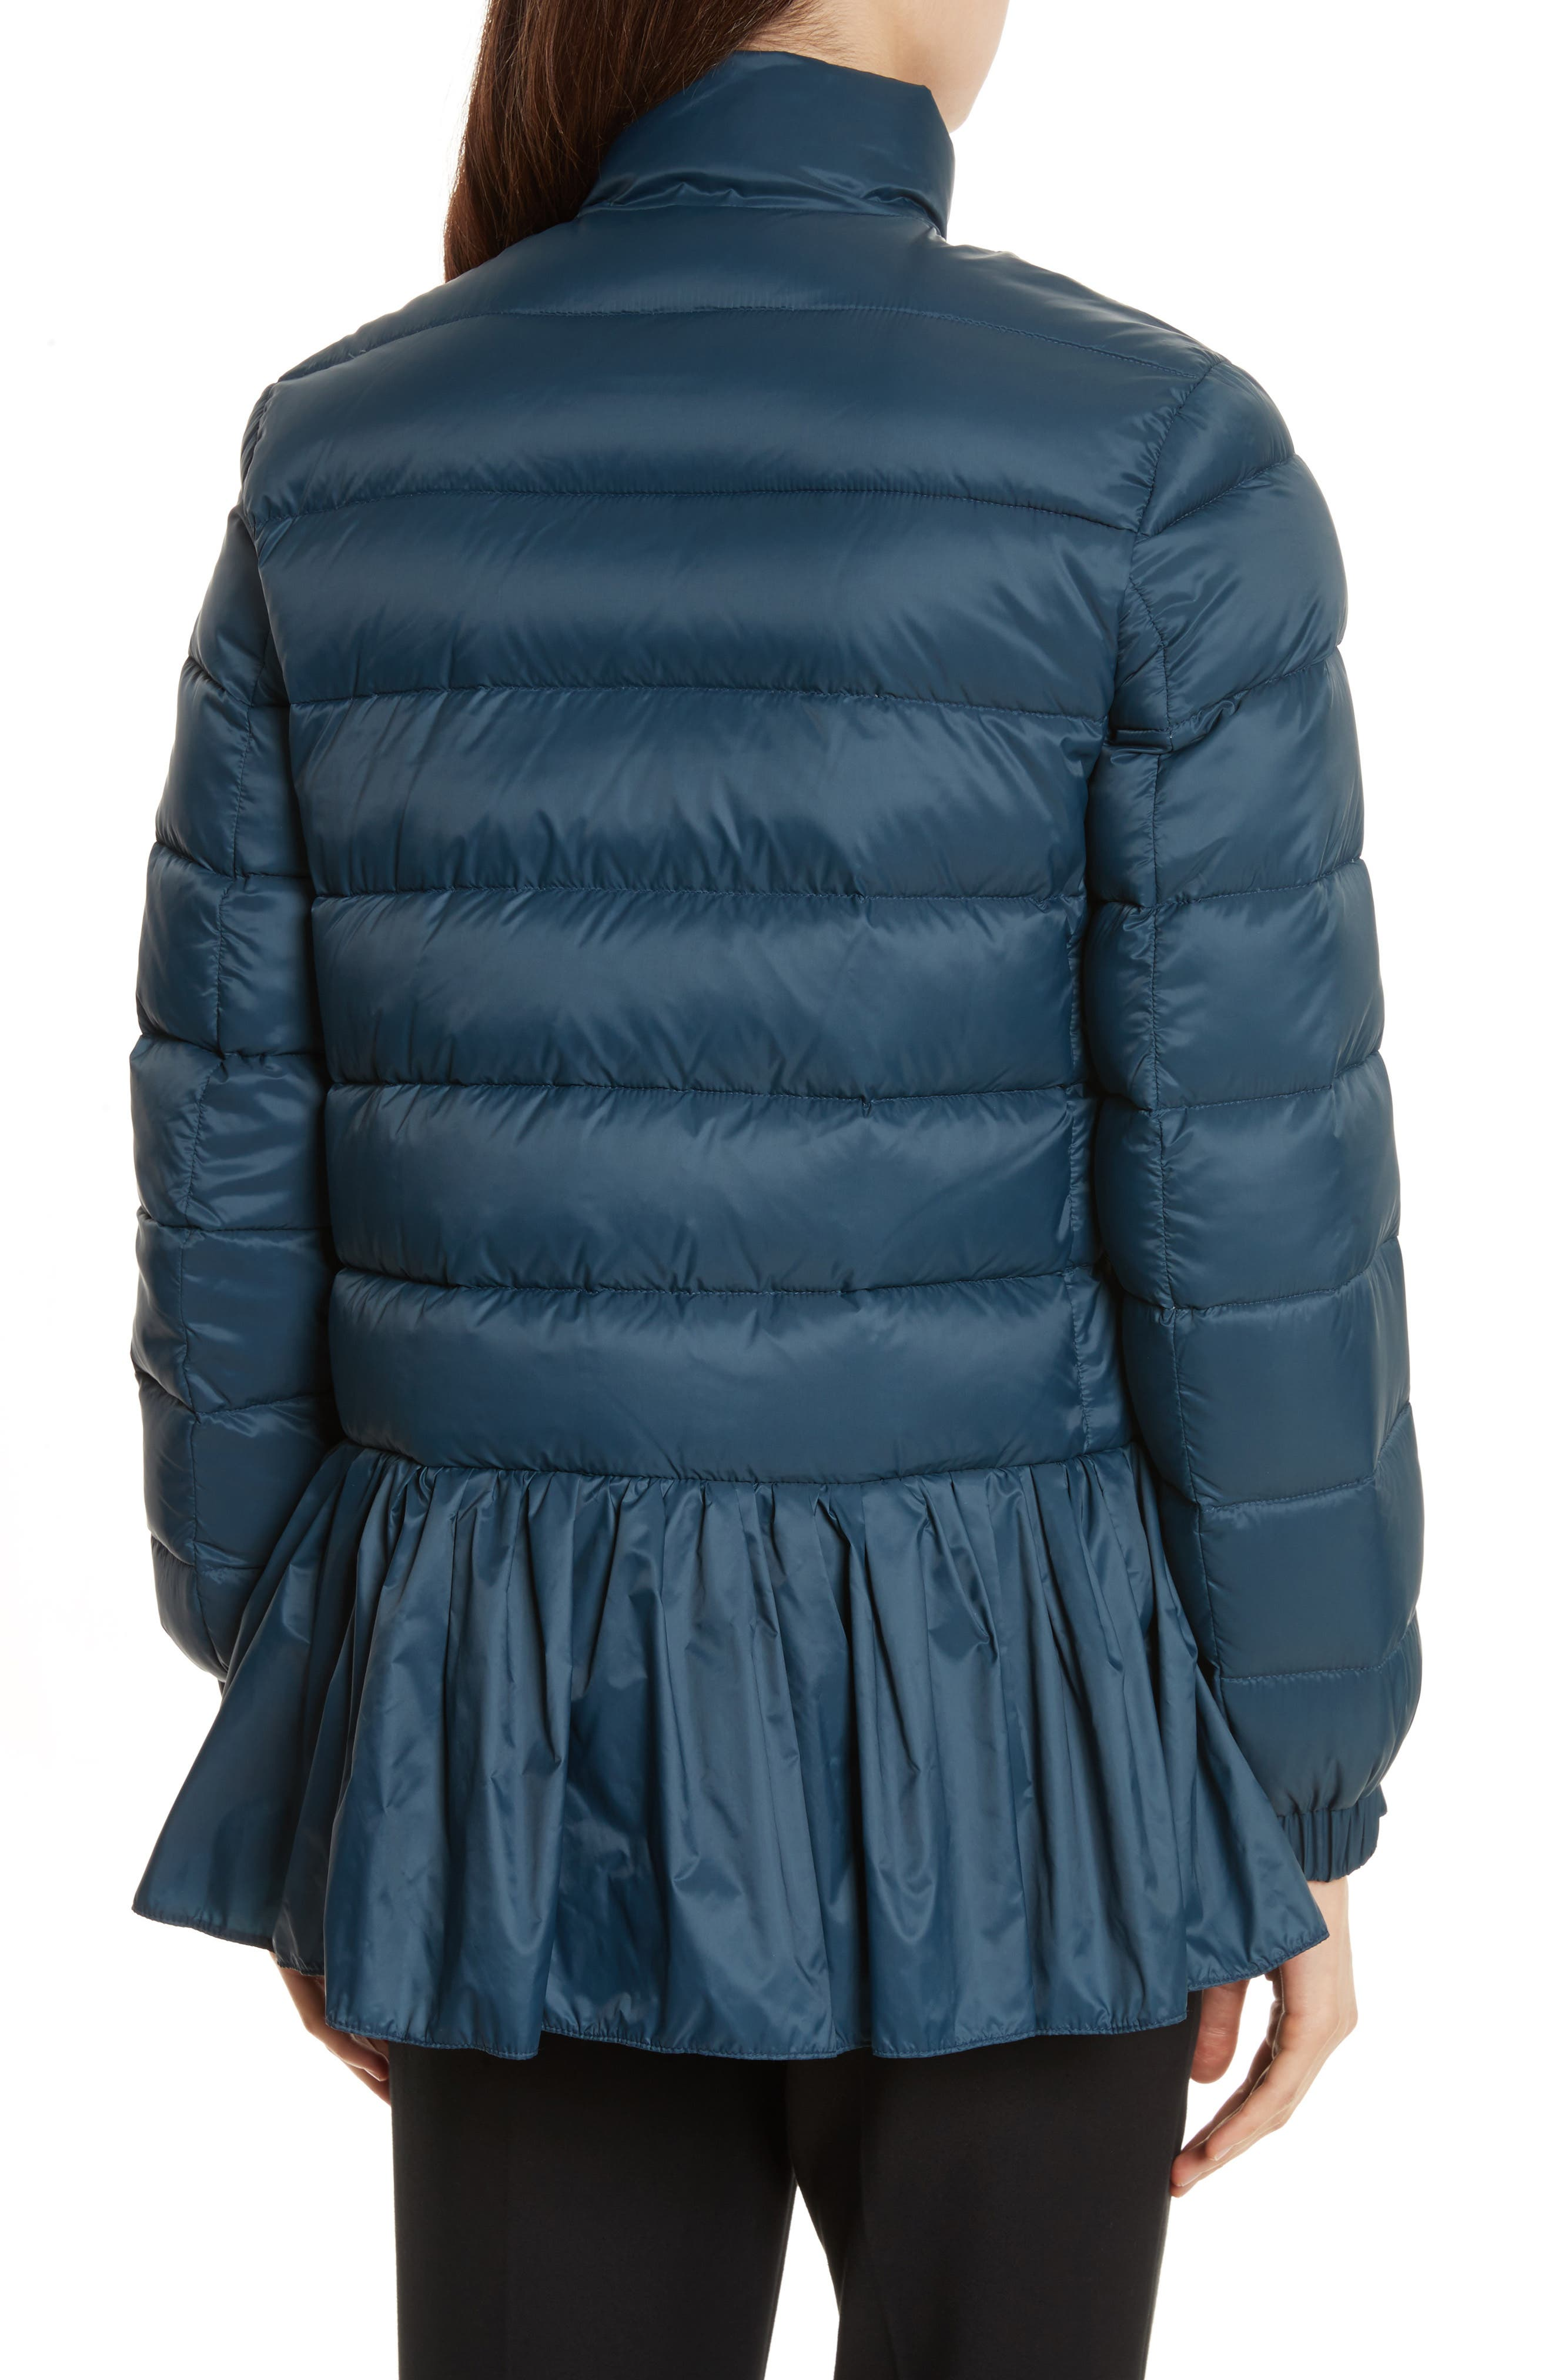 Quilted Peplum Jacket,                             Alternate thumbnail 2, color,                             484